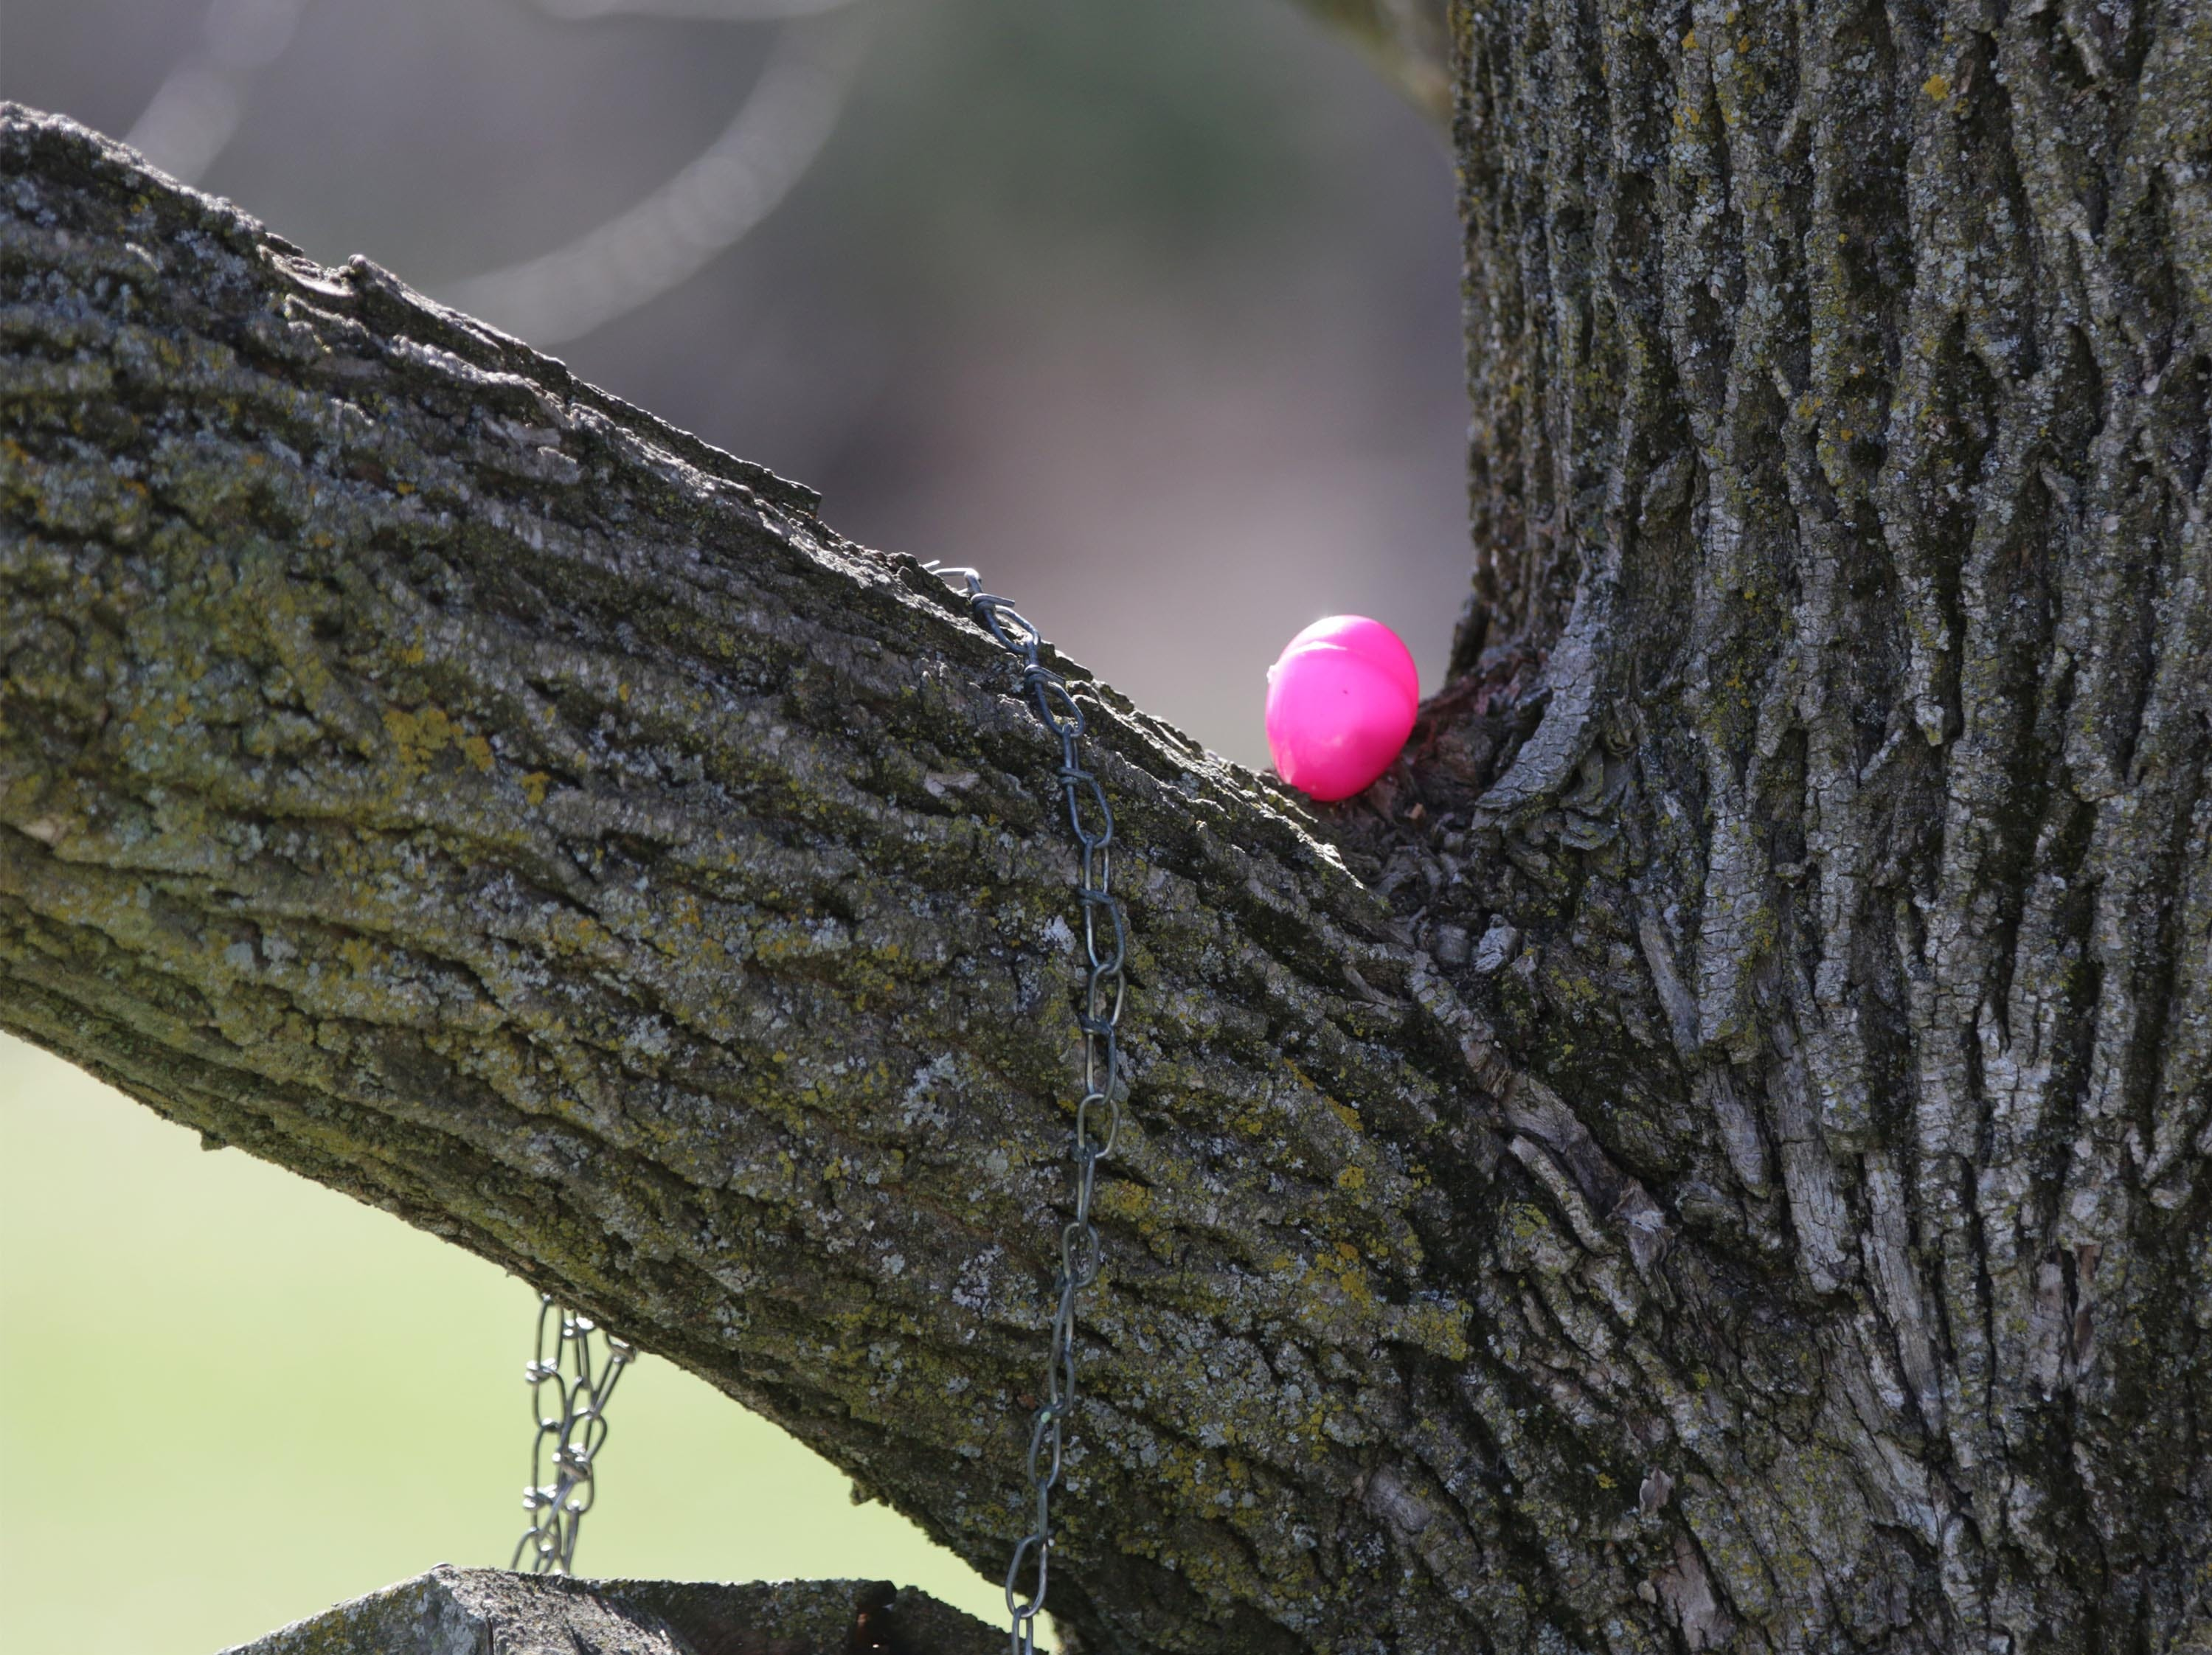 An easter egg in a tree before the Hocevar Easter Egg Hunt, Saturday, April 20, 2019, in Sheboygan Falls, Wis.  This years marks 25 years for the Hocevar Family holding an Easter egg hunt at their home, according to Kathy Hocevar.